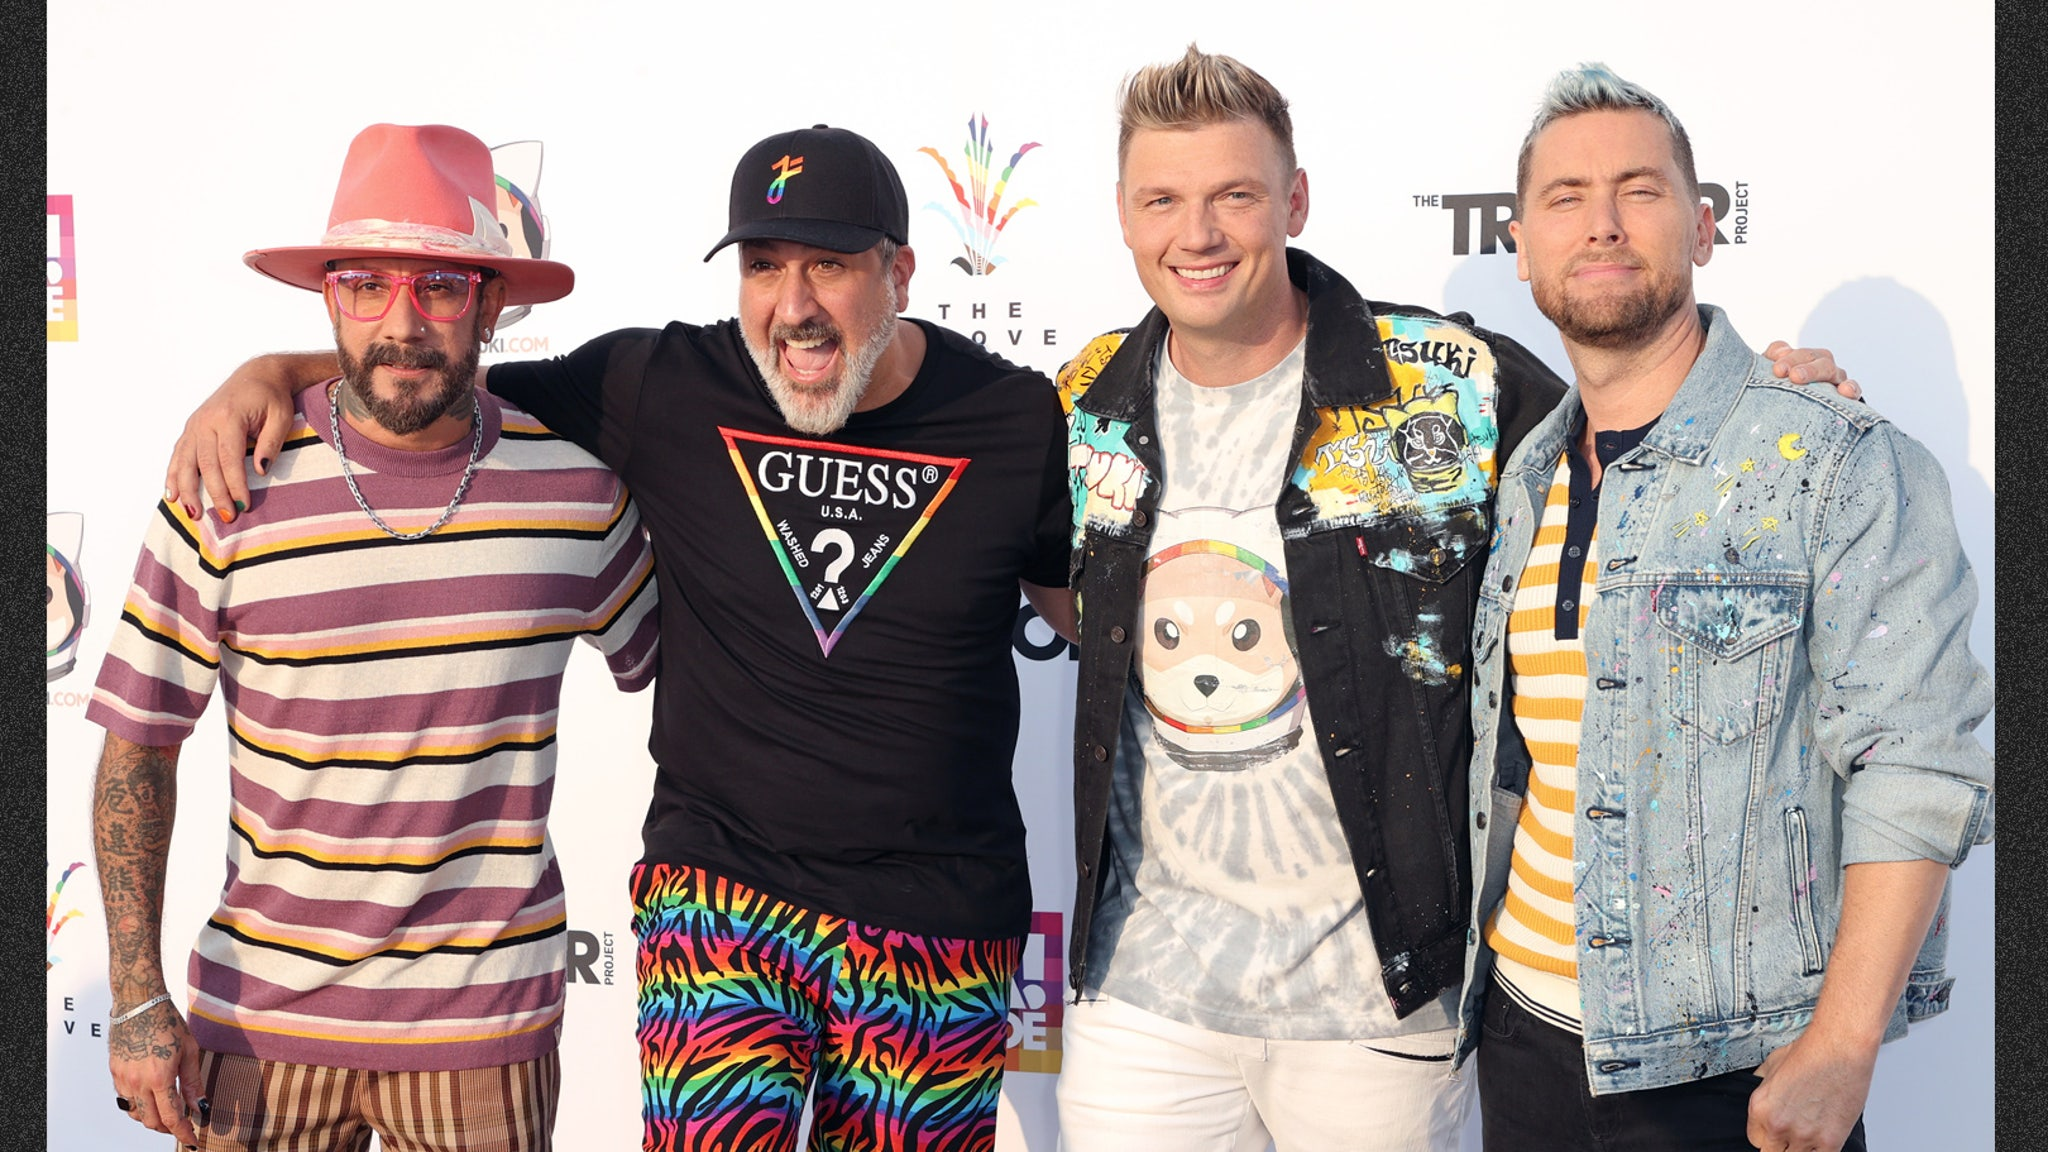 Backstreet Boys and NSYNC members perform together in celebration of pride